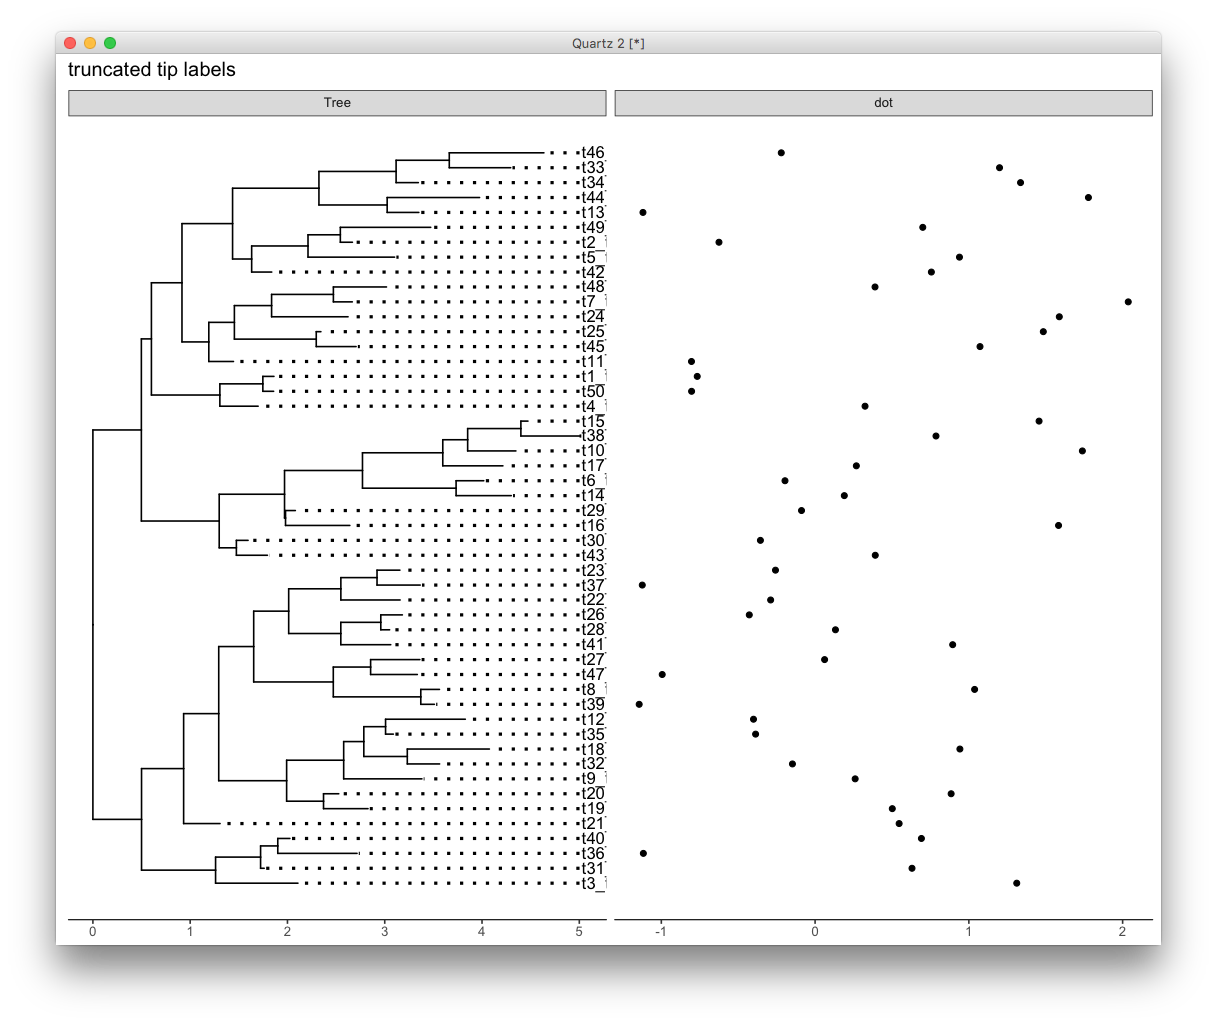 xlim_tree: set x axis limits for only Tree panel